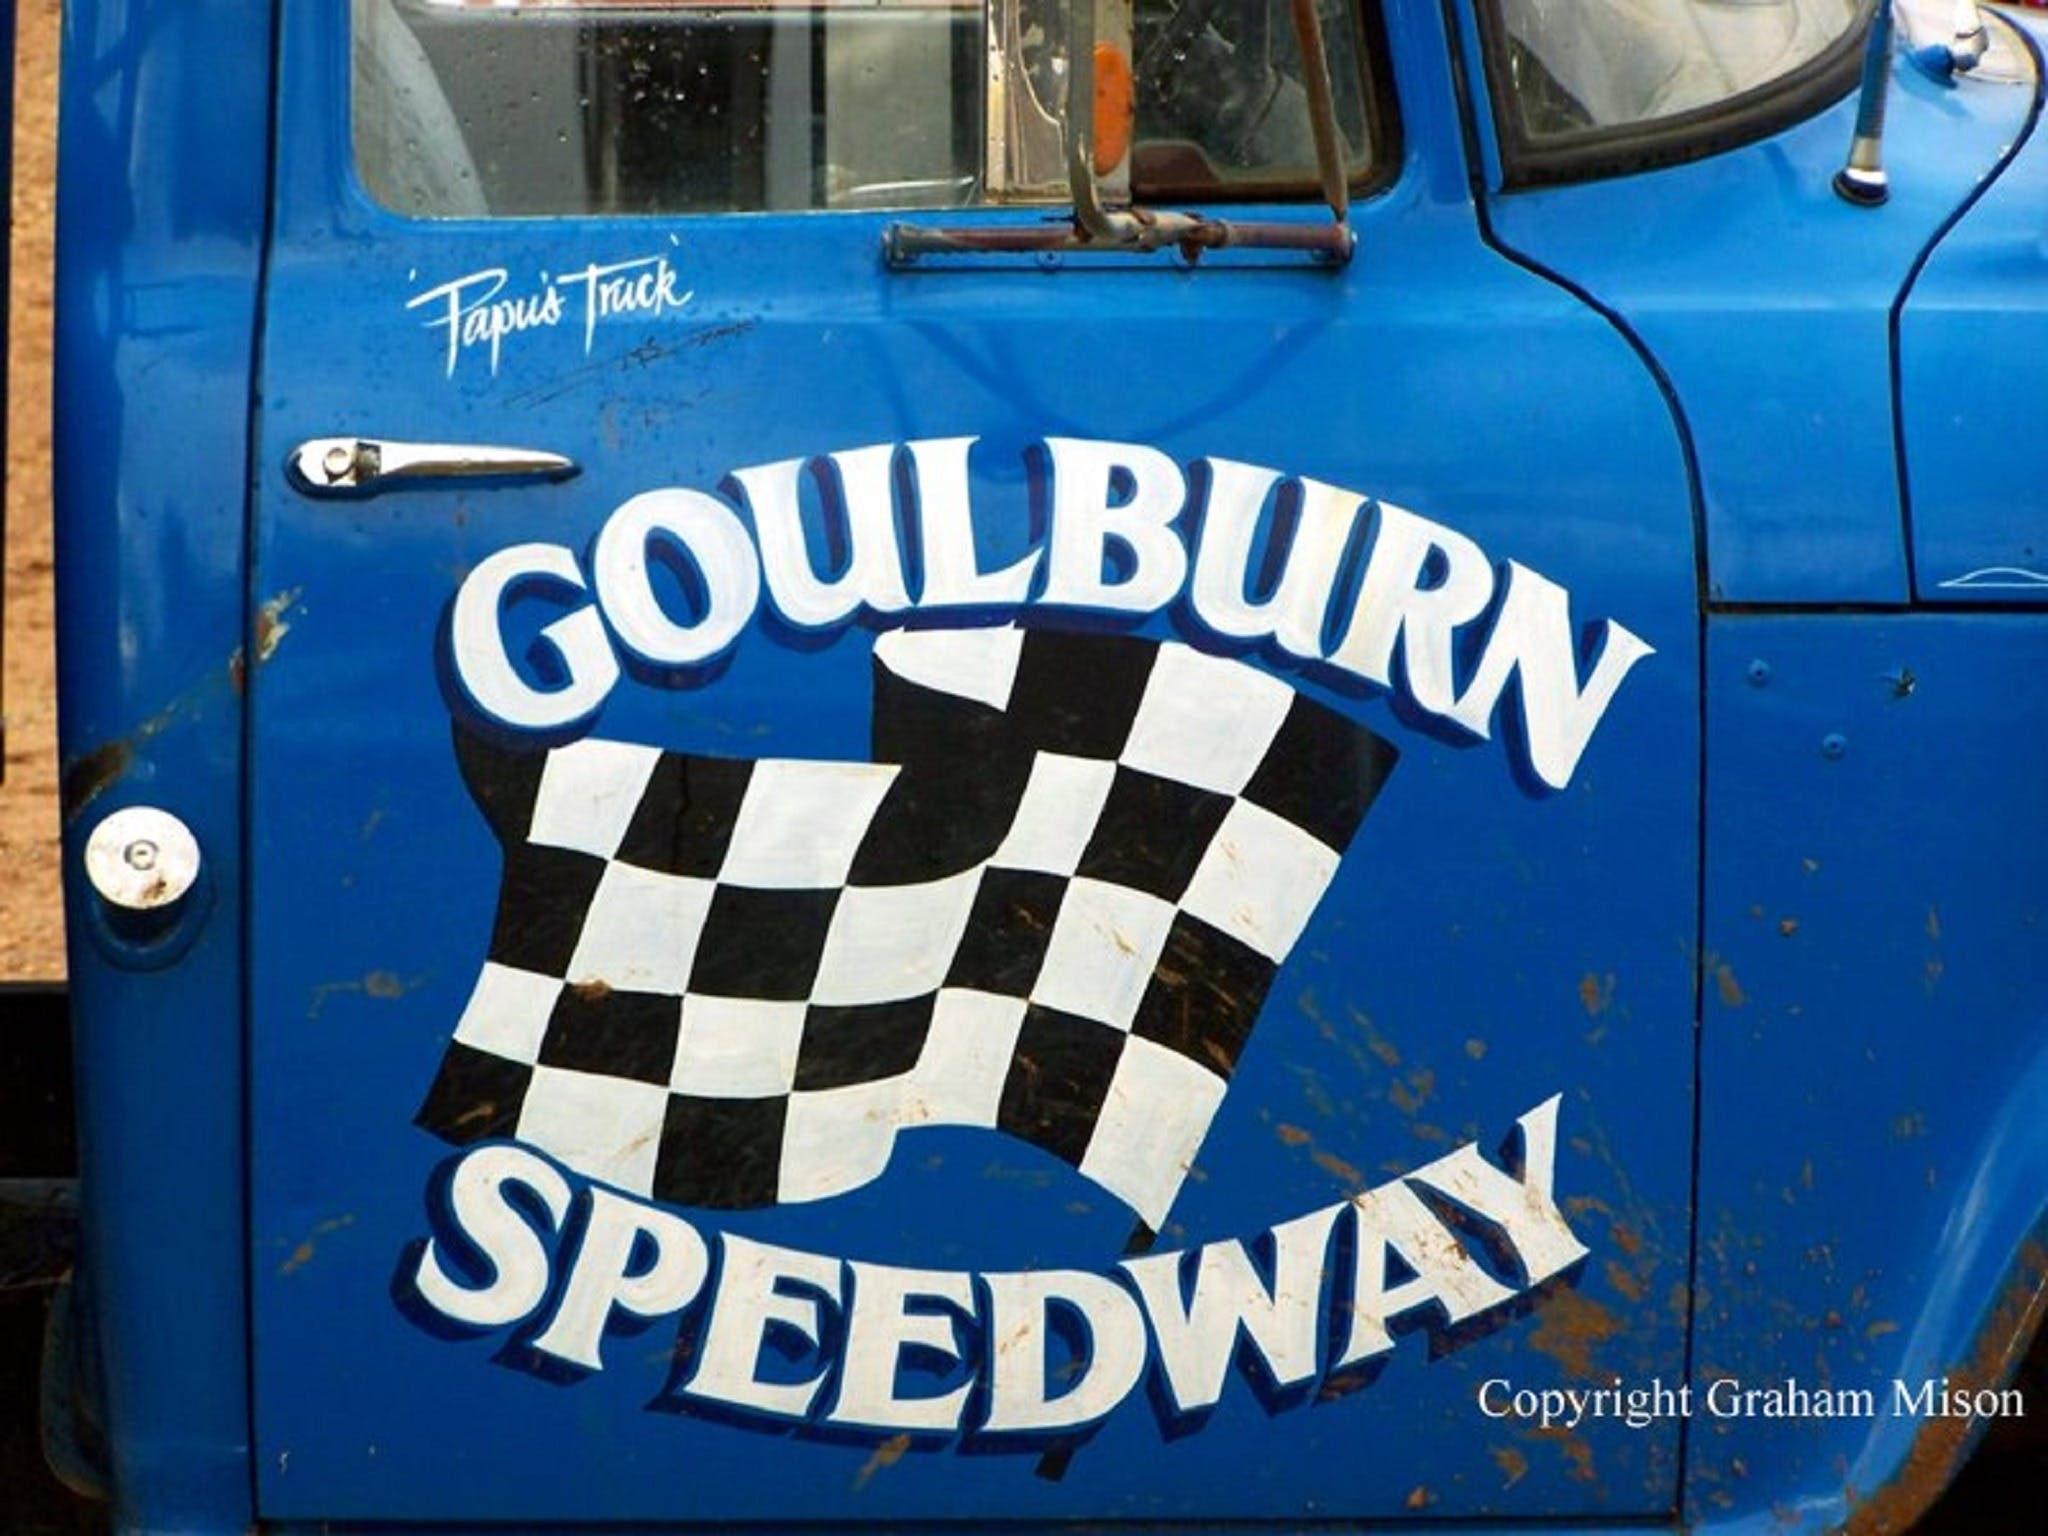 50 years of racing at Goulburn Speedway - VIC Tourism